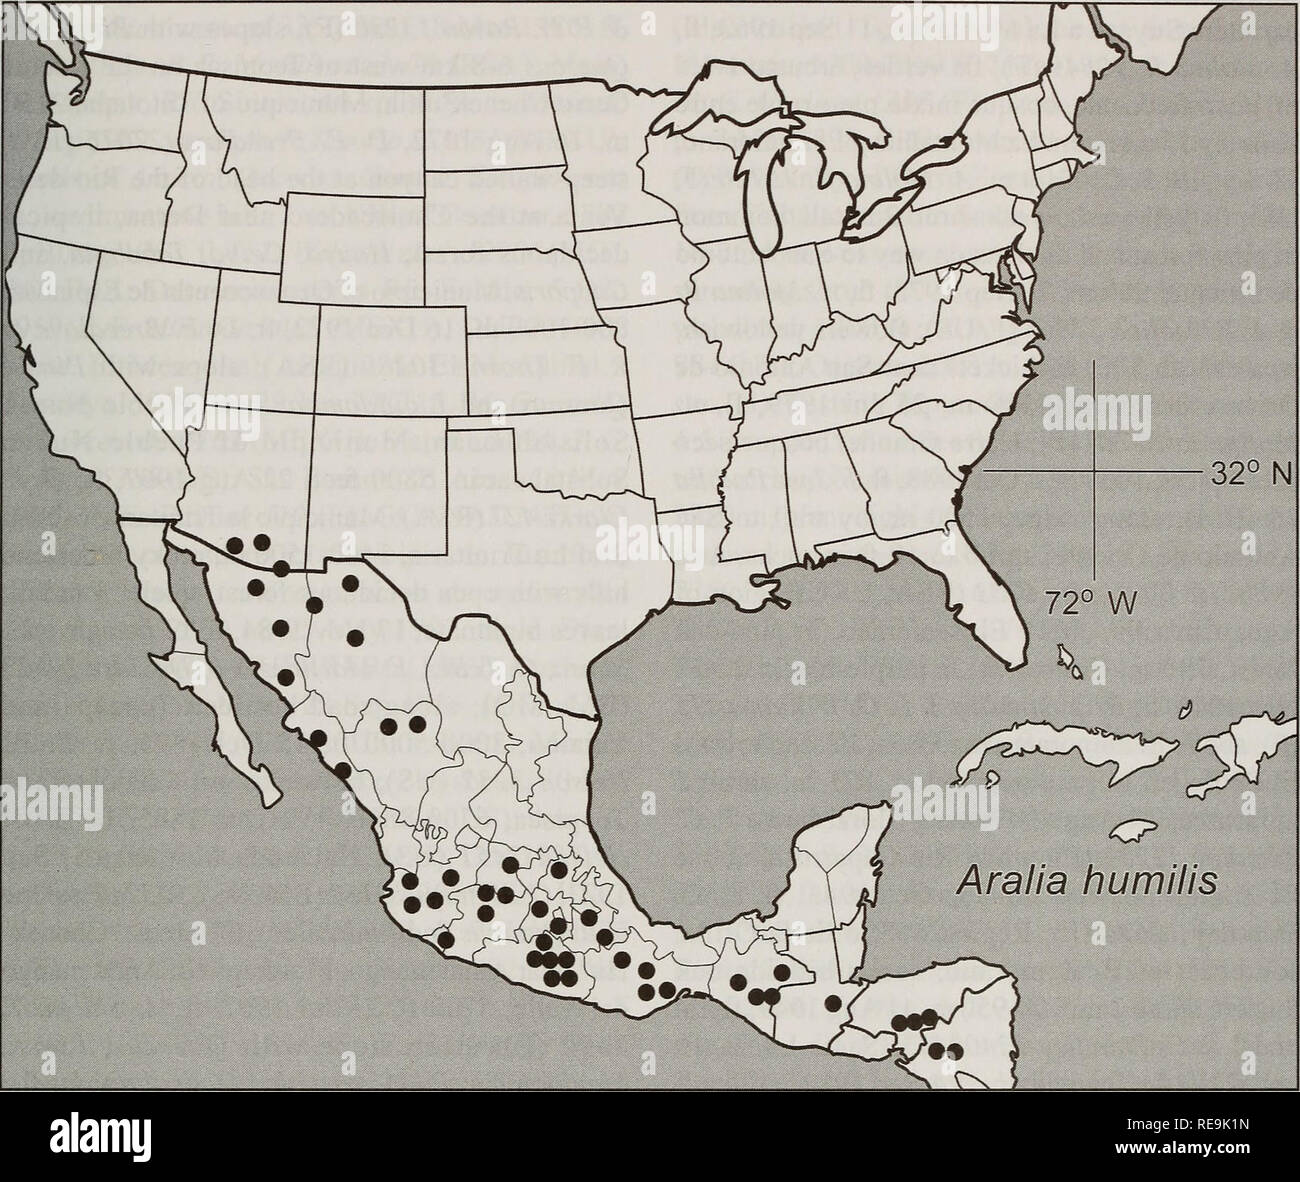 Map Of Central America Stock Photos & Map Of Central America